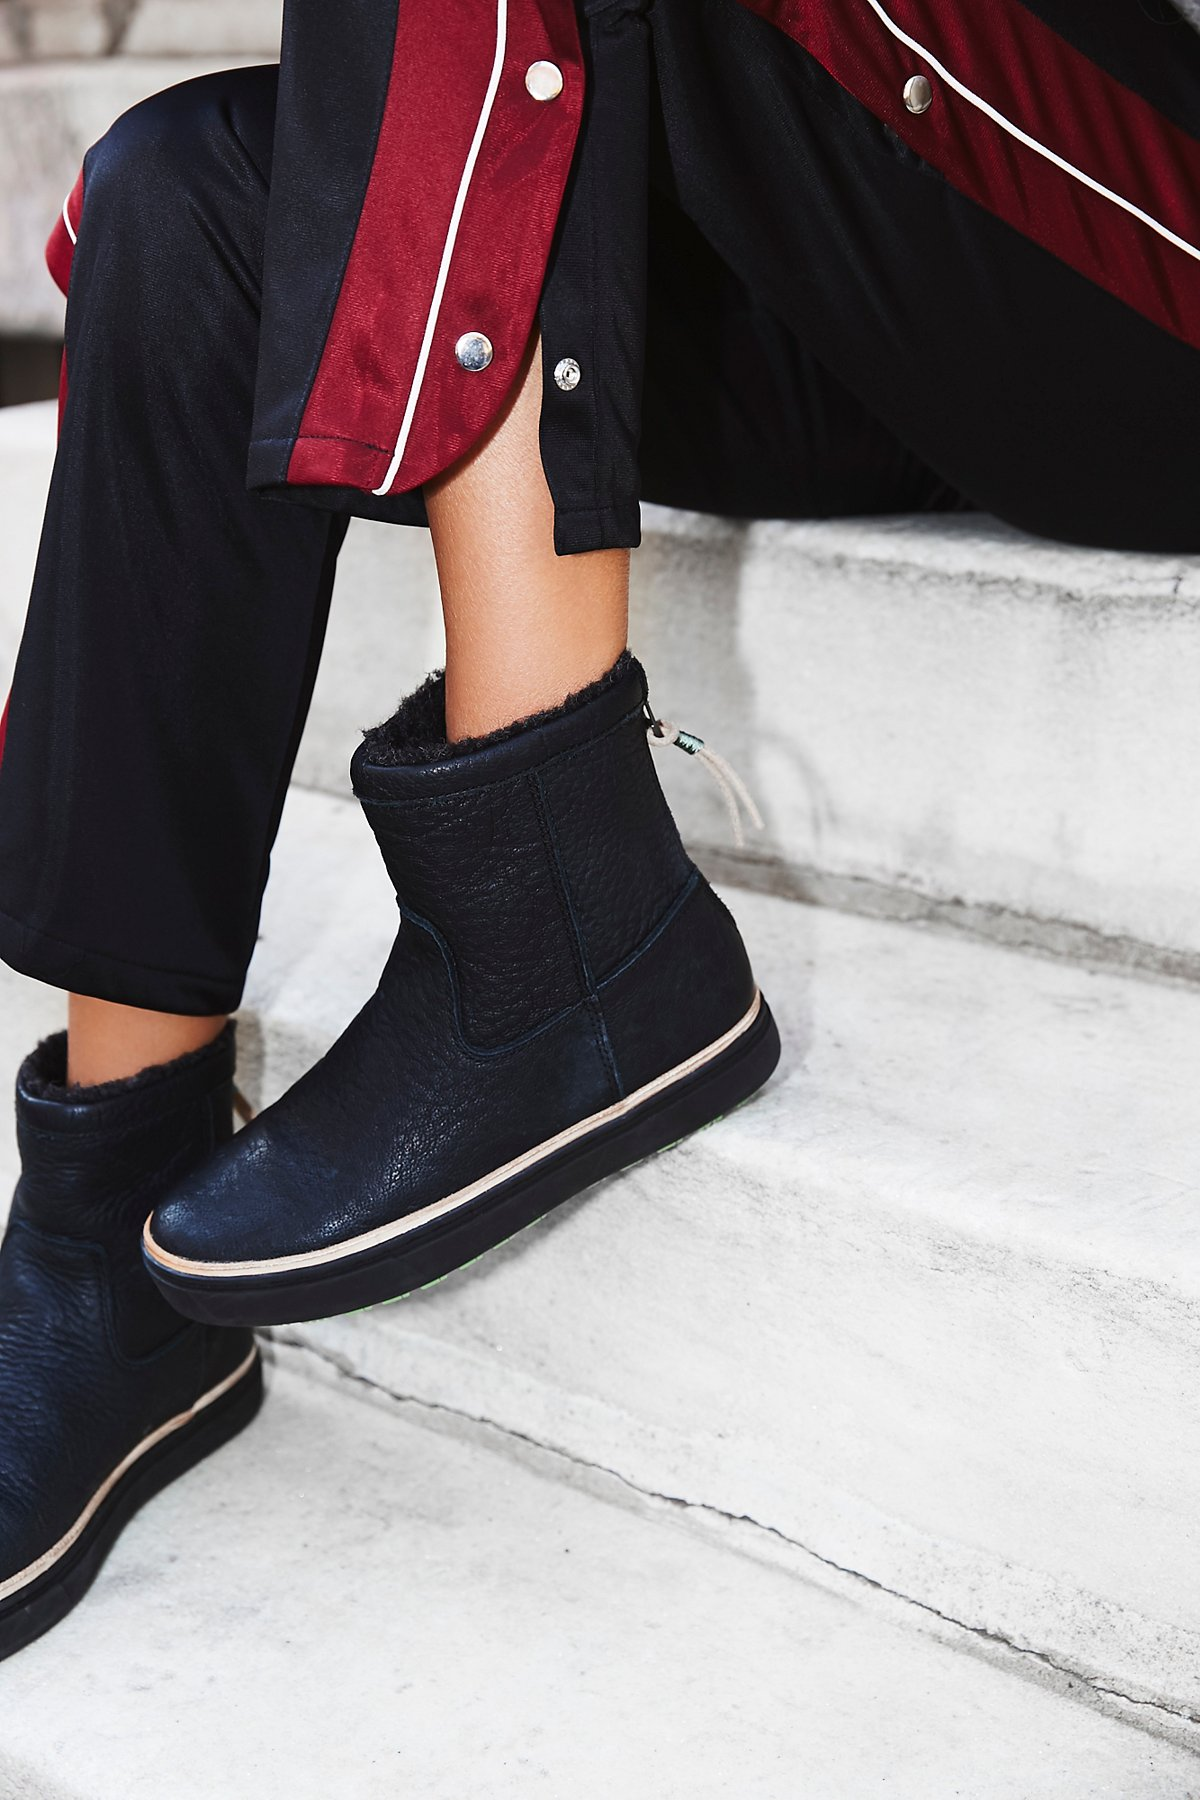 Three Lakes Ankle Boot